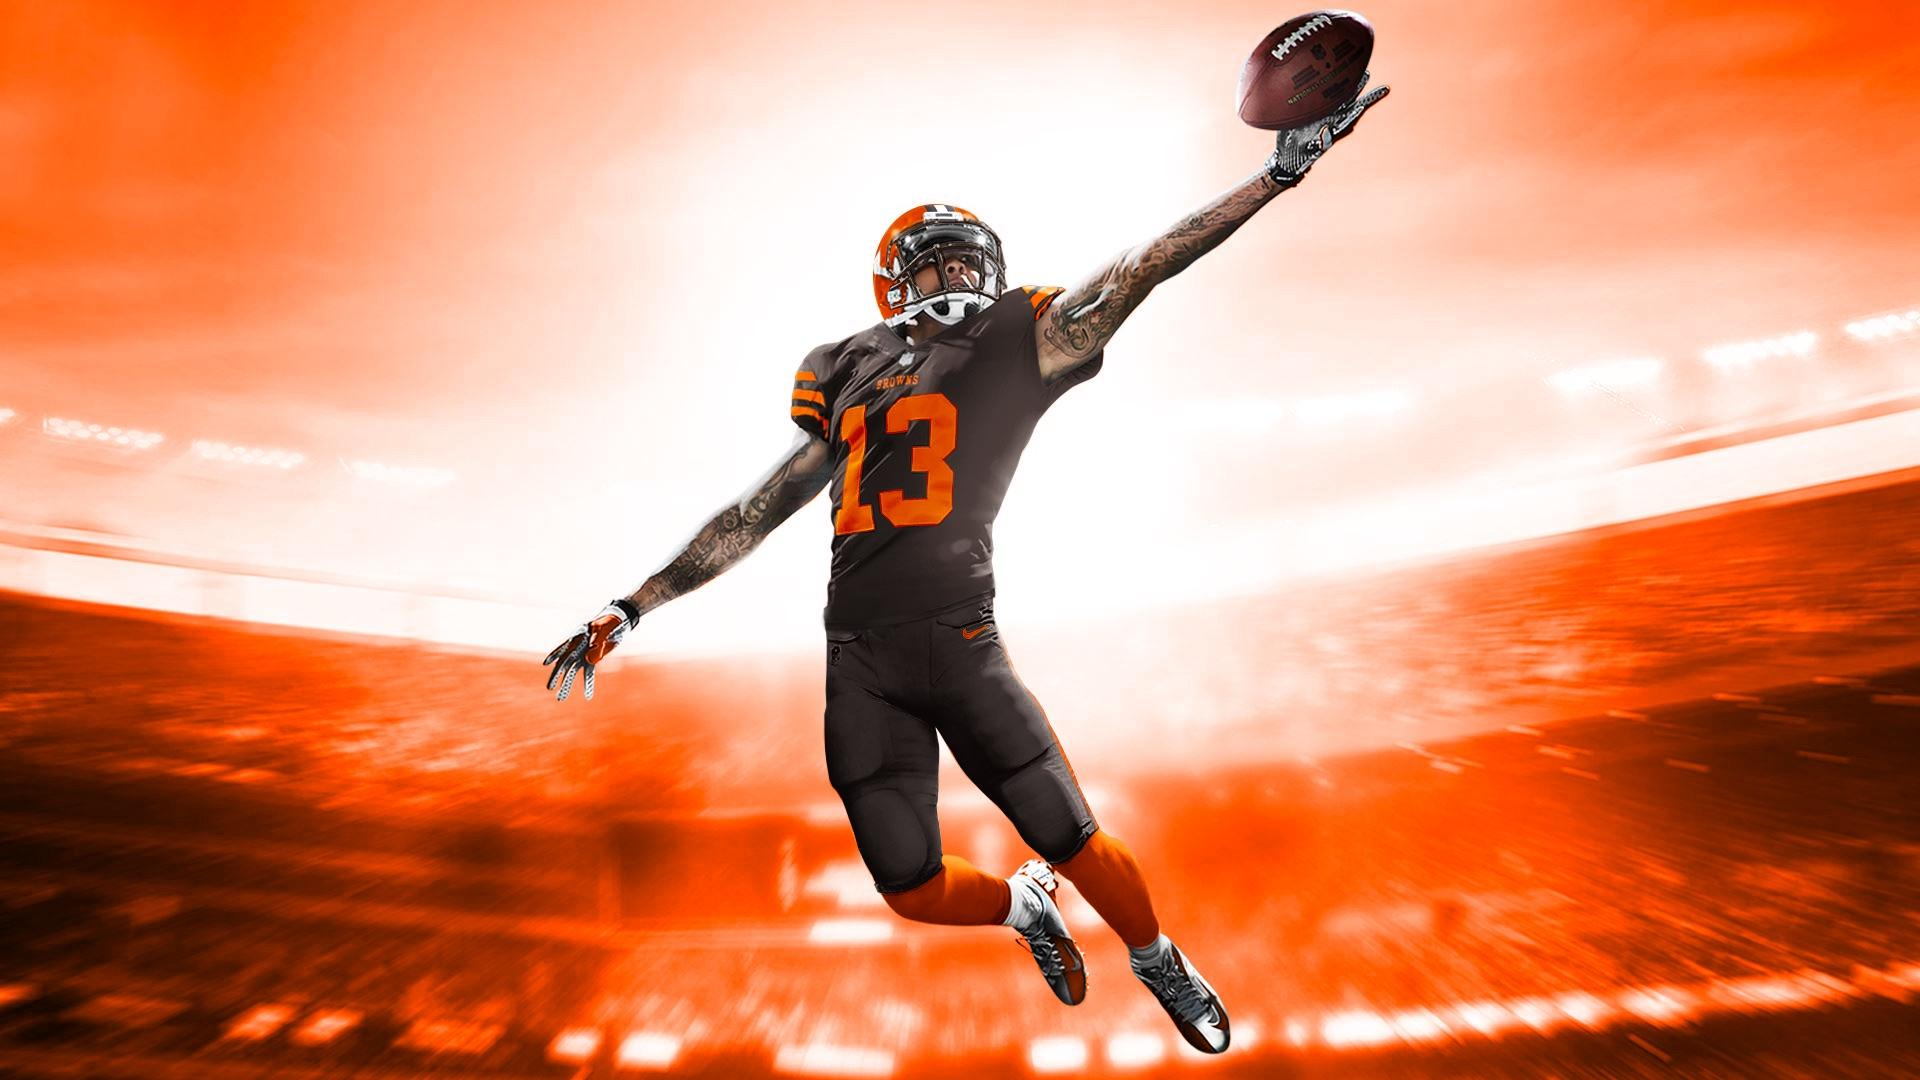 Obj Wallpaper Hd Posted By Sarah Thompson